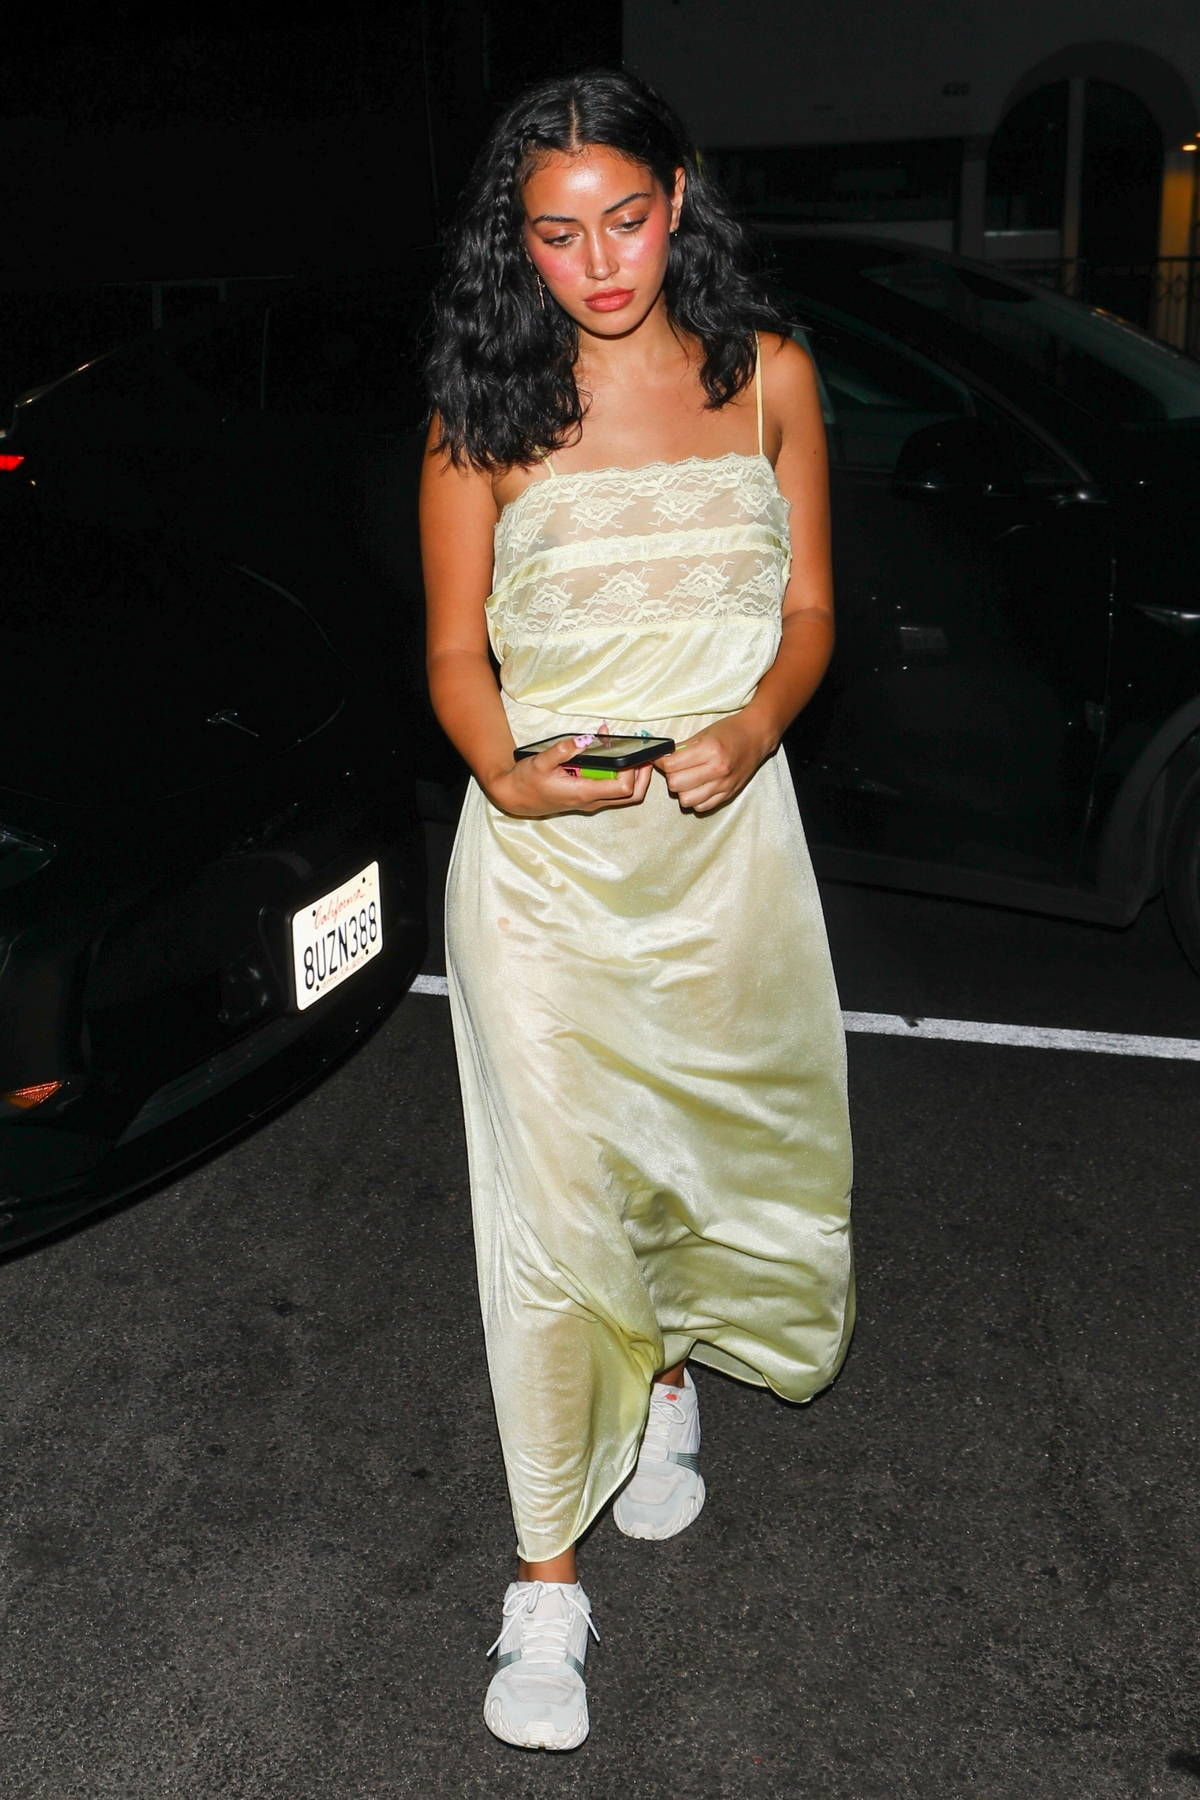 Cindy Kimberly dons a see-through dress as she arrives at a birthday party at The Nice Guy in West Hollywood, California